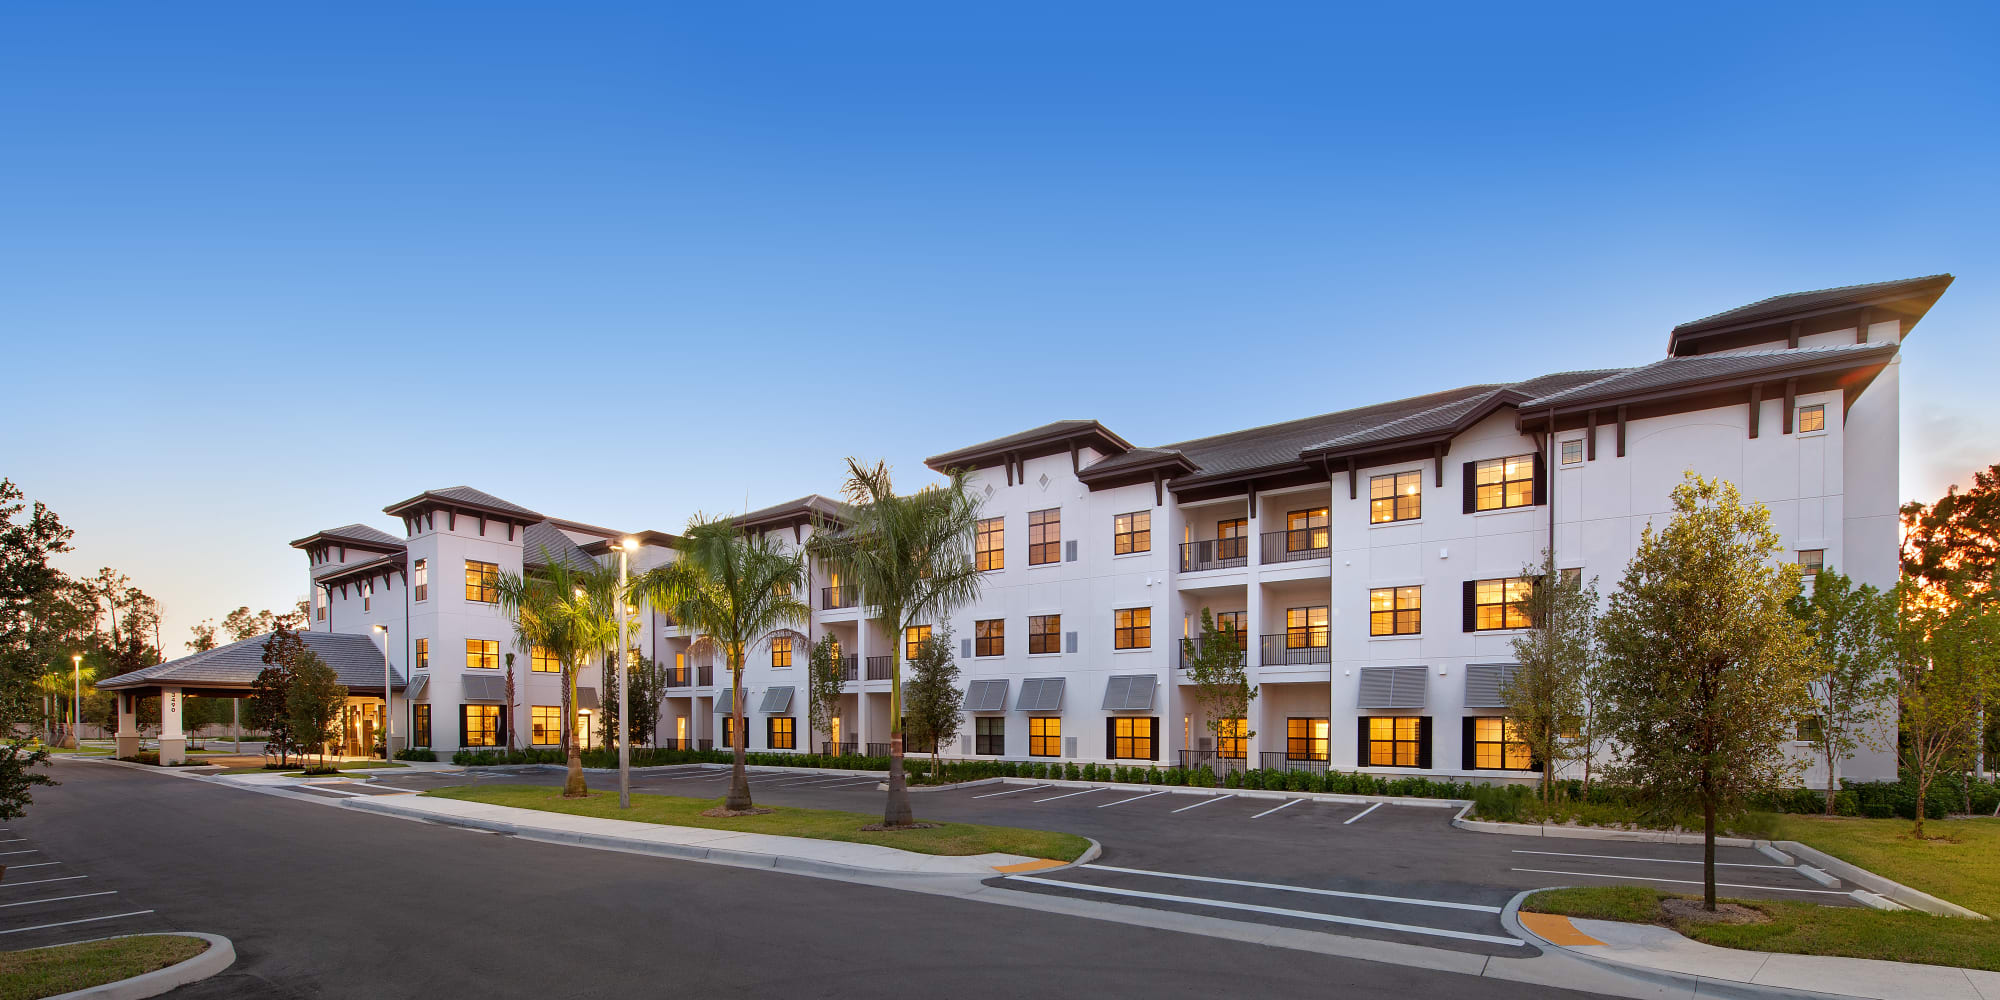 Building facade at Keystone Place at Four Mile Cove in Cape Coral, Florida